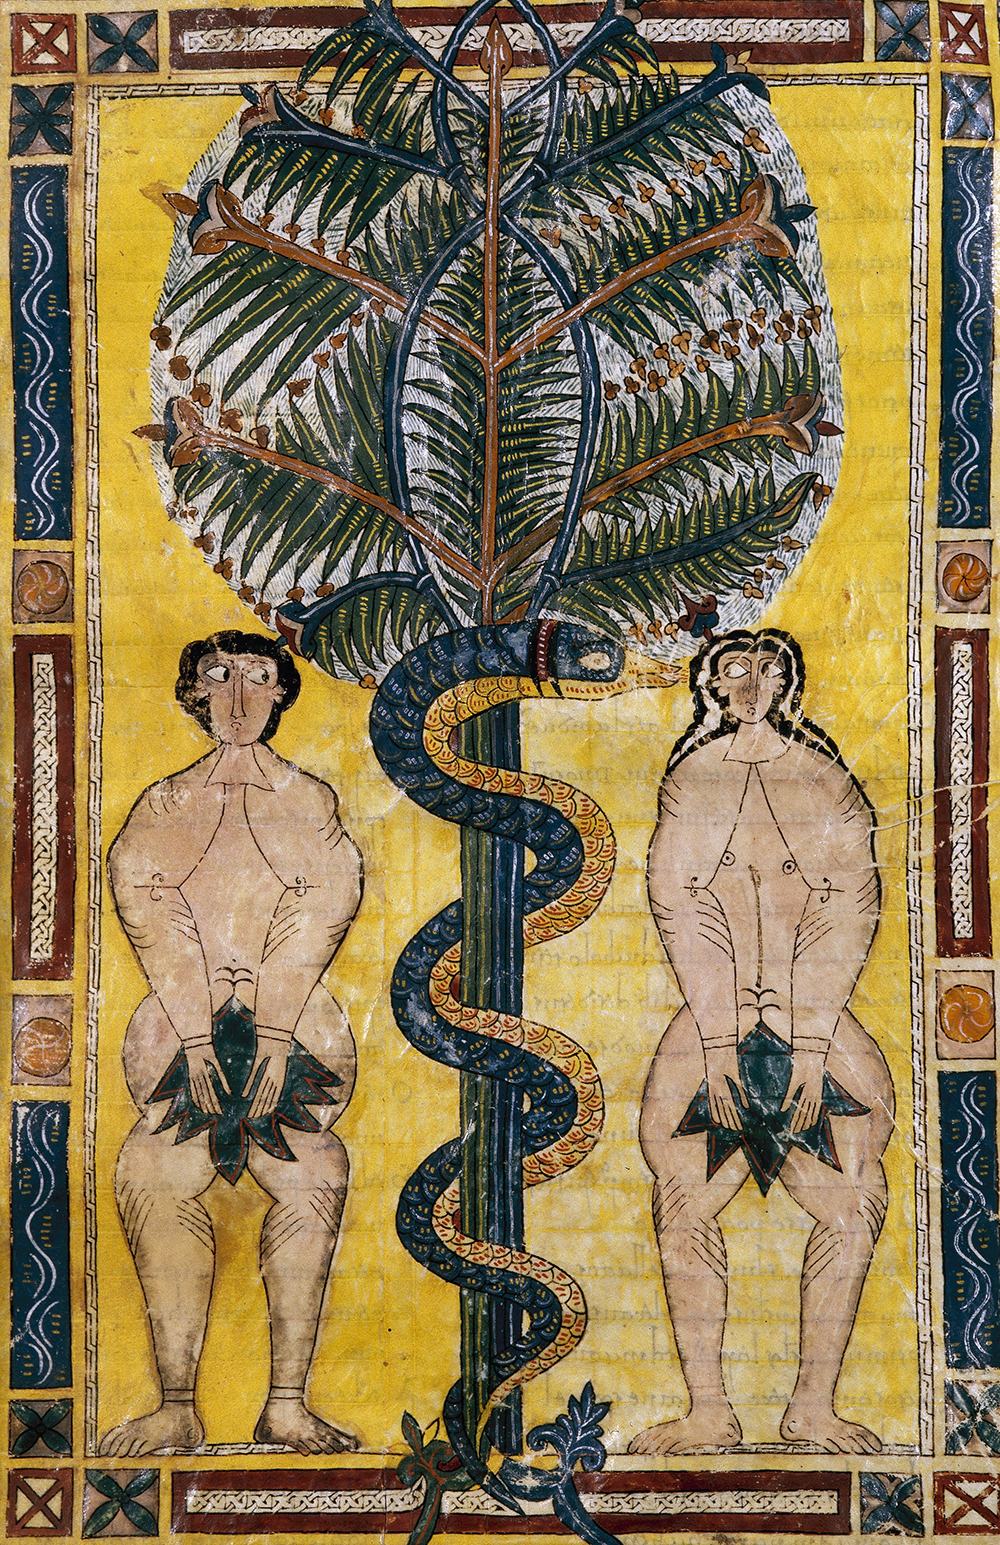 Adam and Eve tempted by the serpent, detail of a miniature from Beatus of Liébana's Commentary on the Apocalypse.